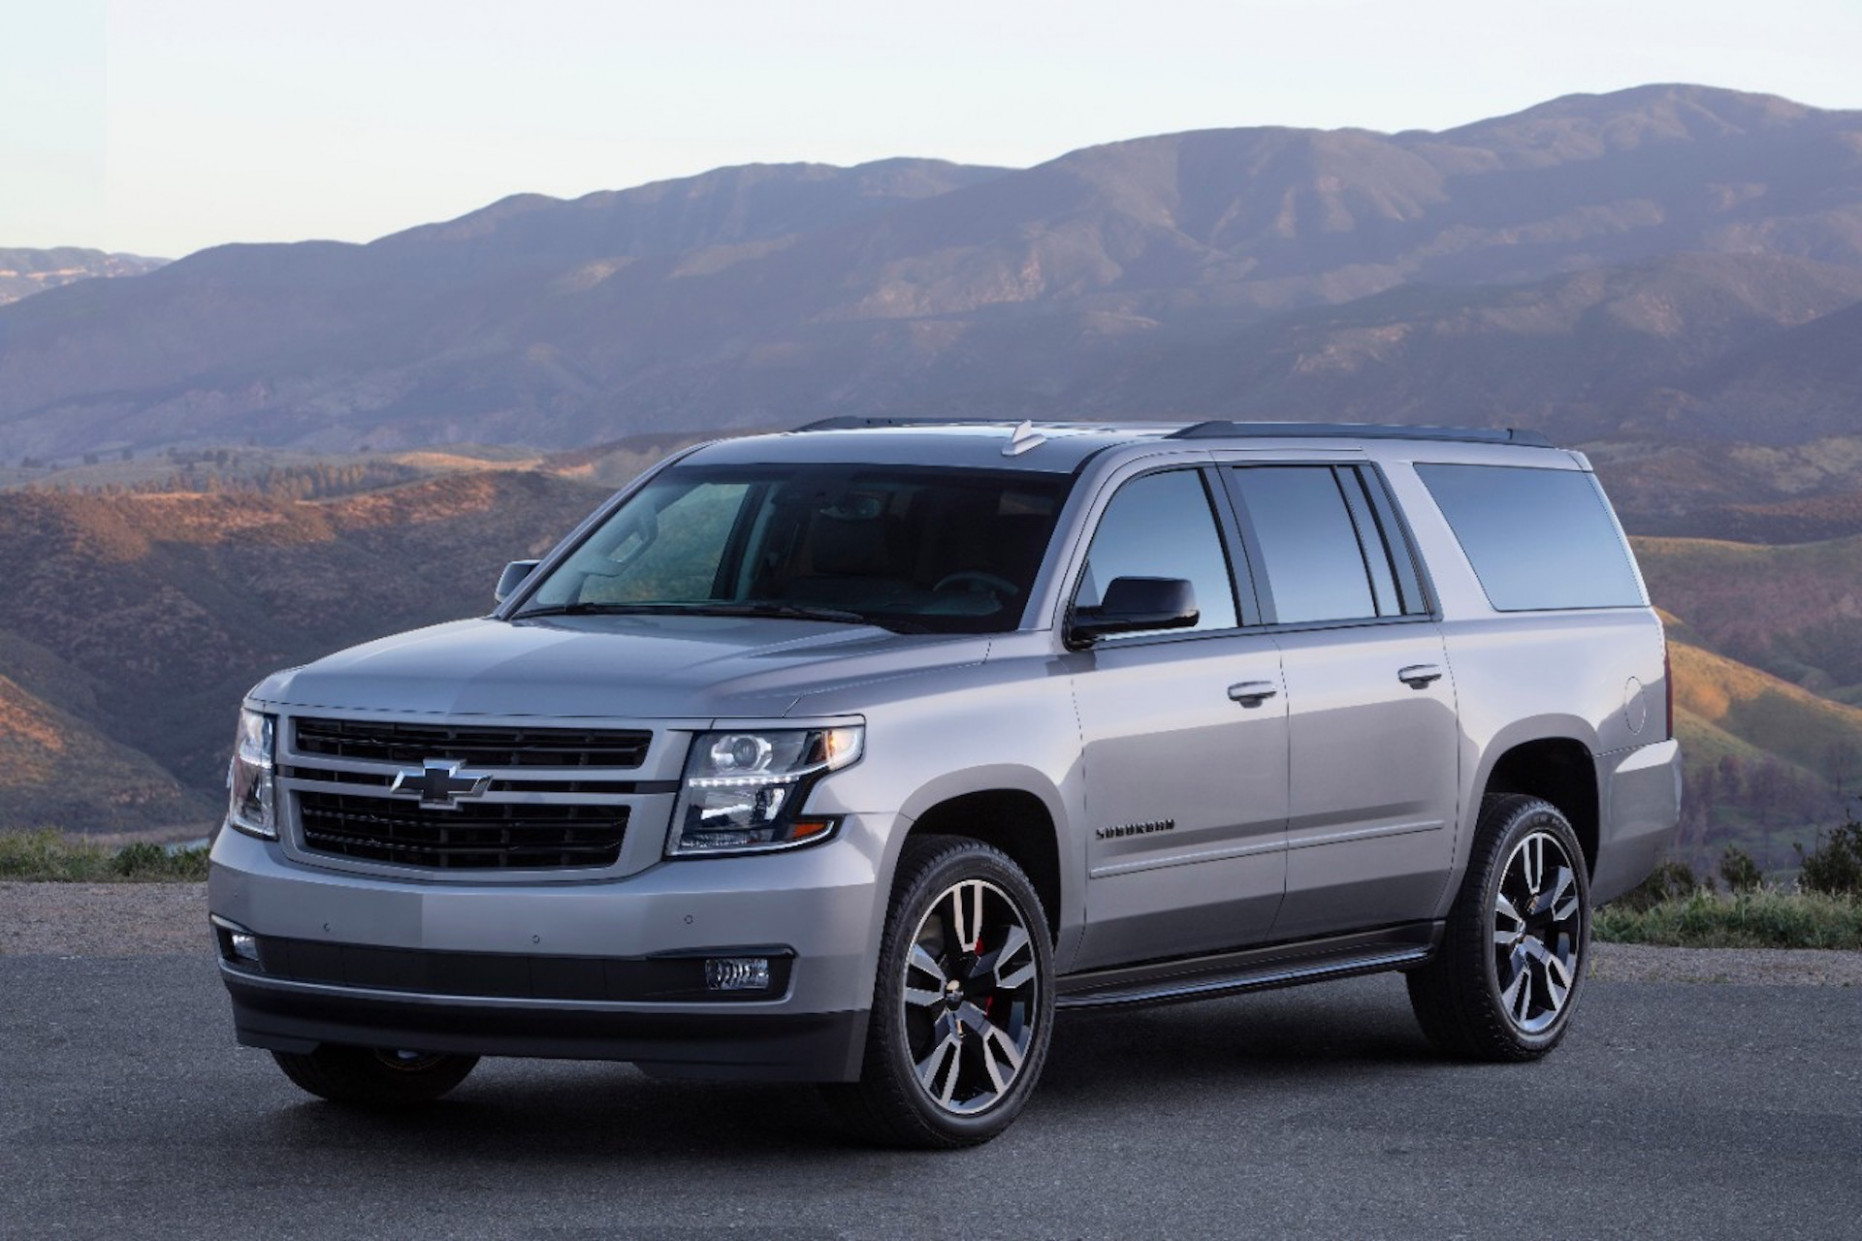 6 Chevrolet Suburban (Chevy) Review, Ratings, Specs, Prices ..